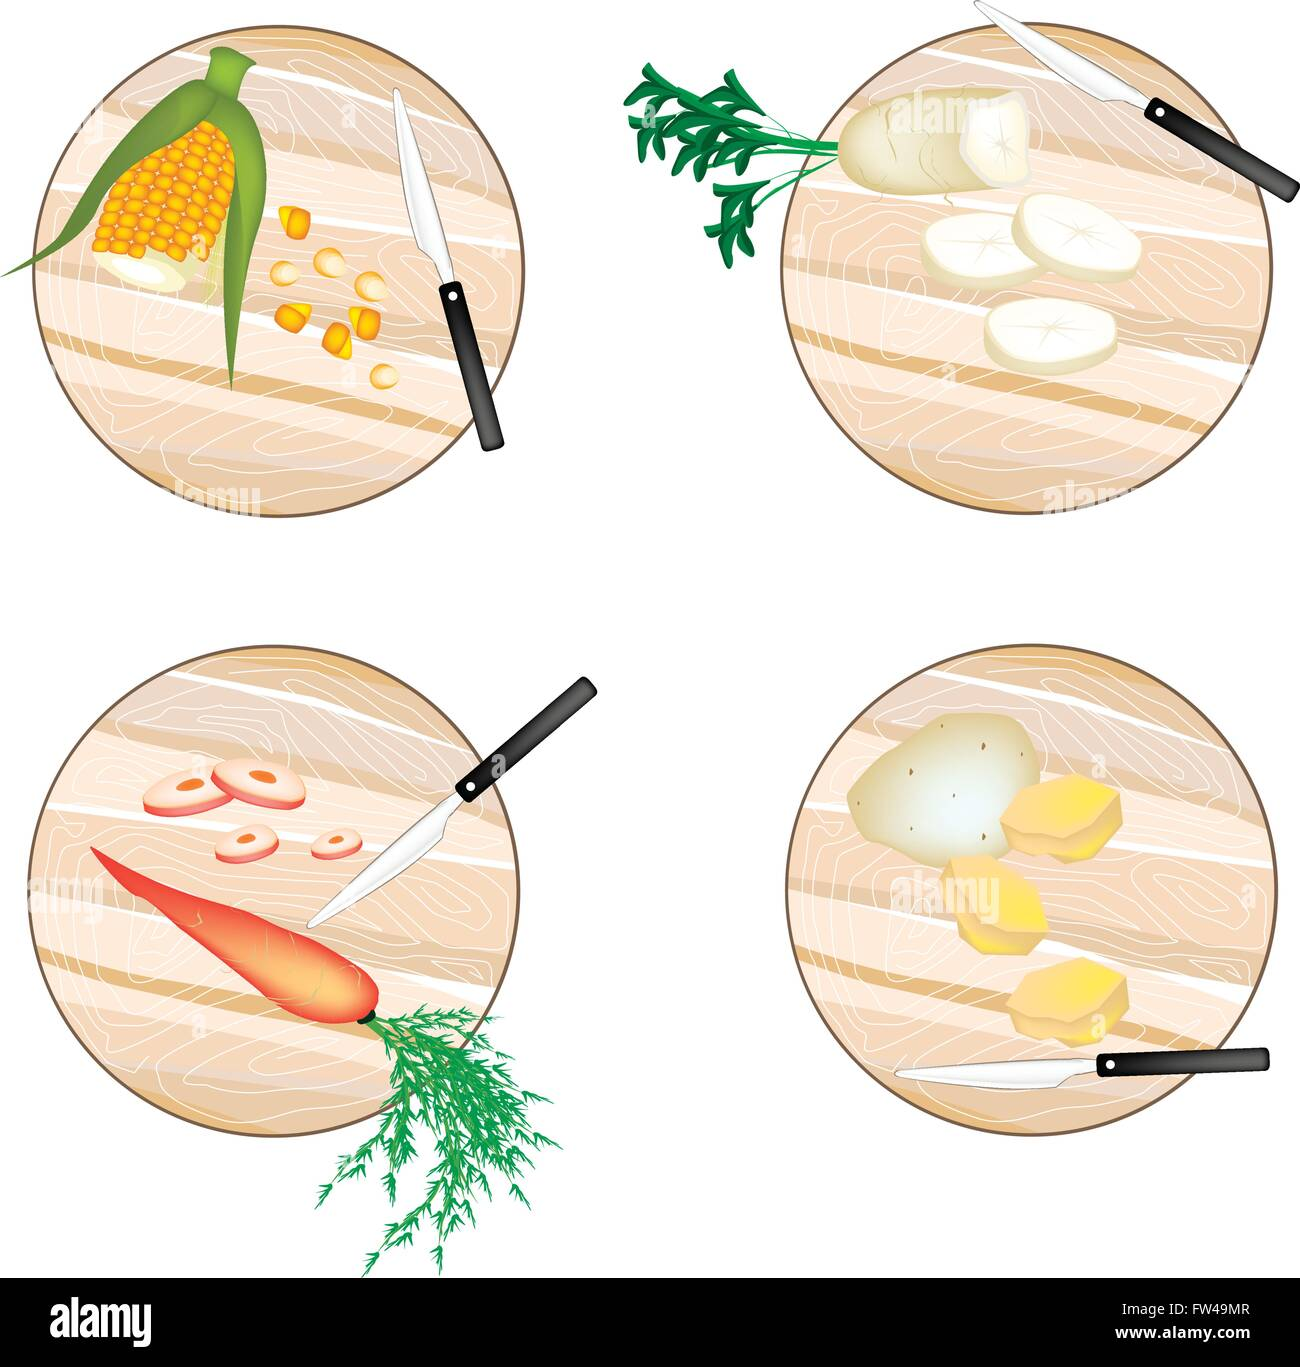 Vegetable, Illustration Sweet Corn, White Radish, Carrot and Potatoes on Wooden Cutting Boards. - Stock Image